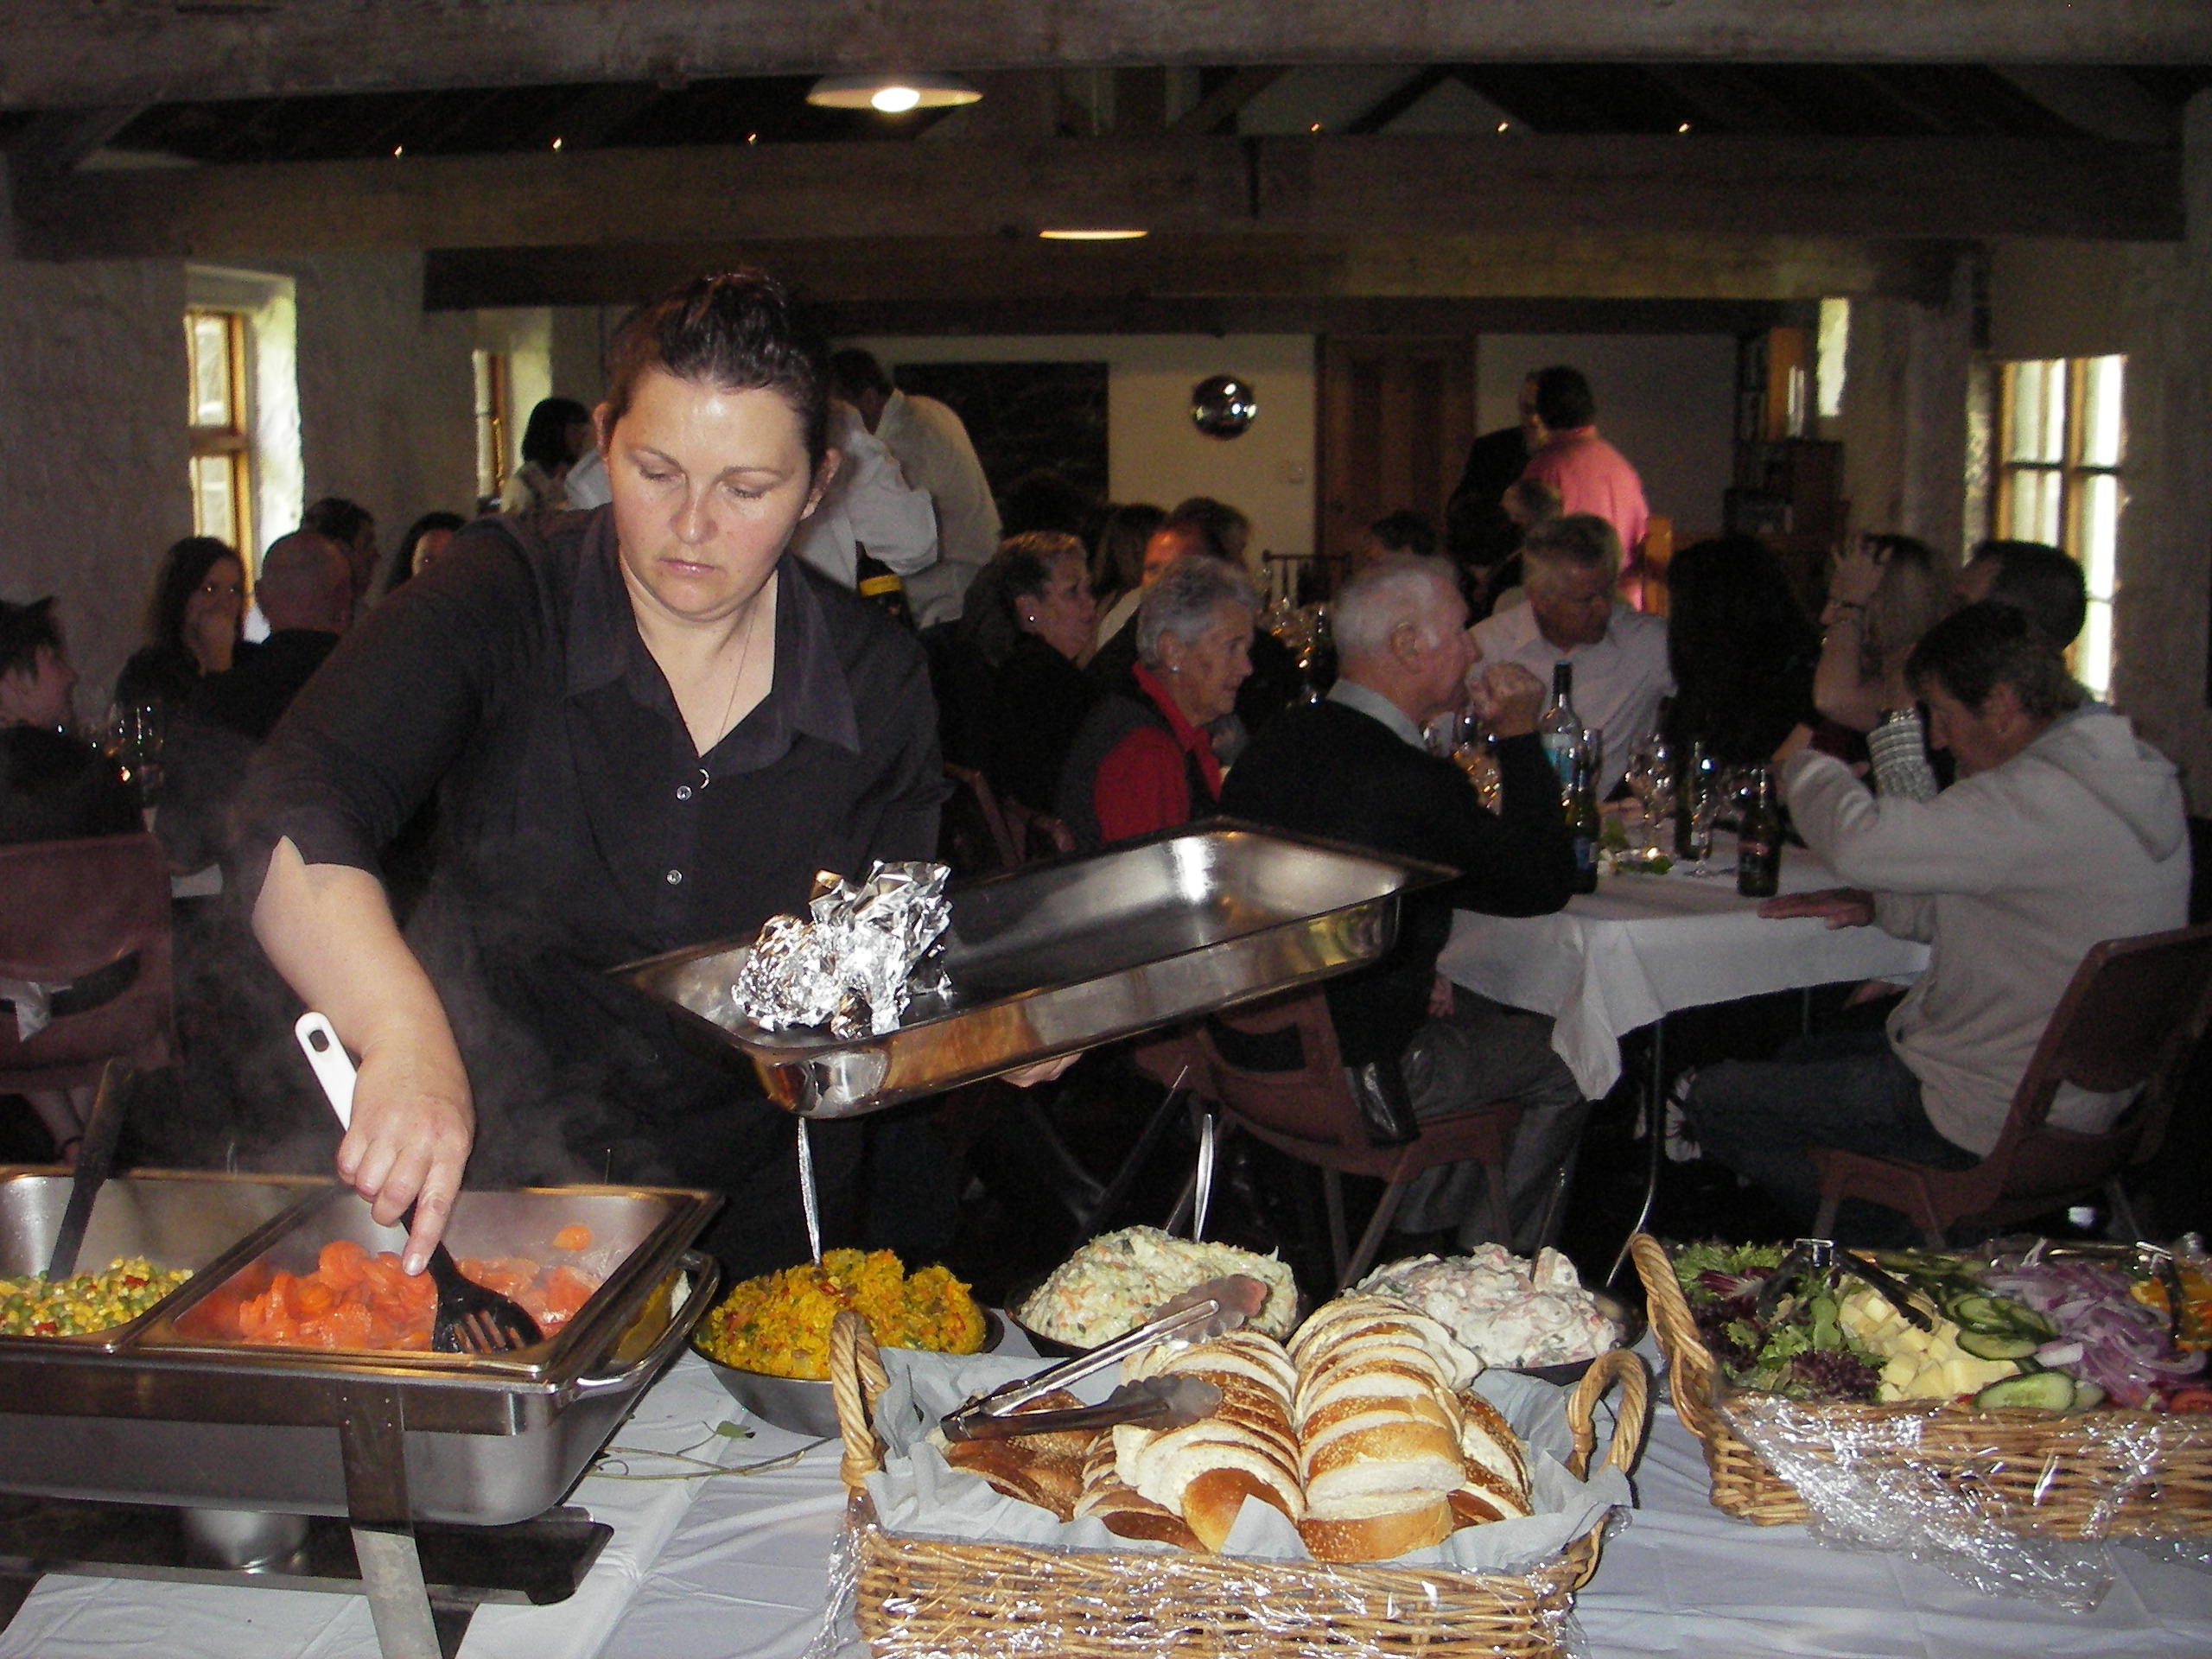 Fabulous Feasts – serving the meats, prepared on site.